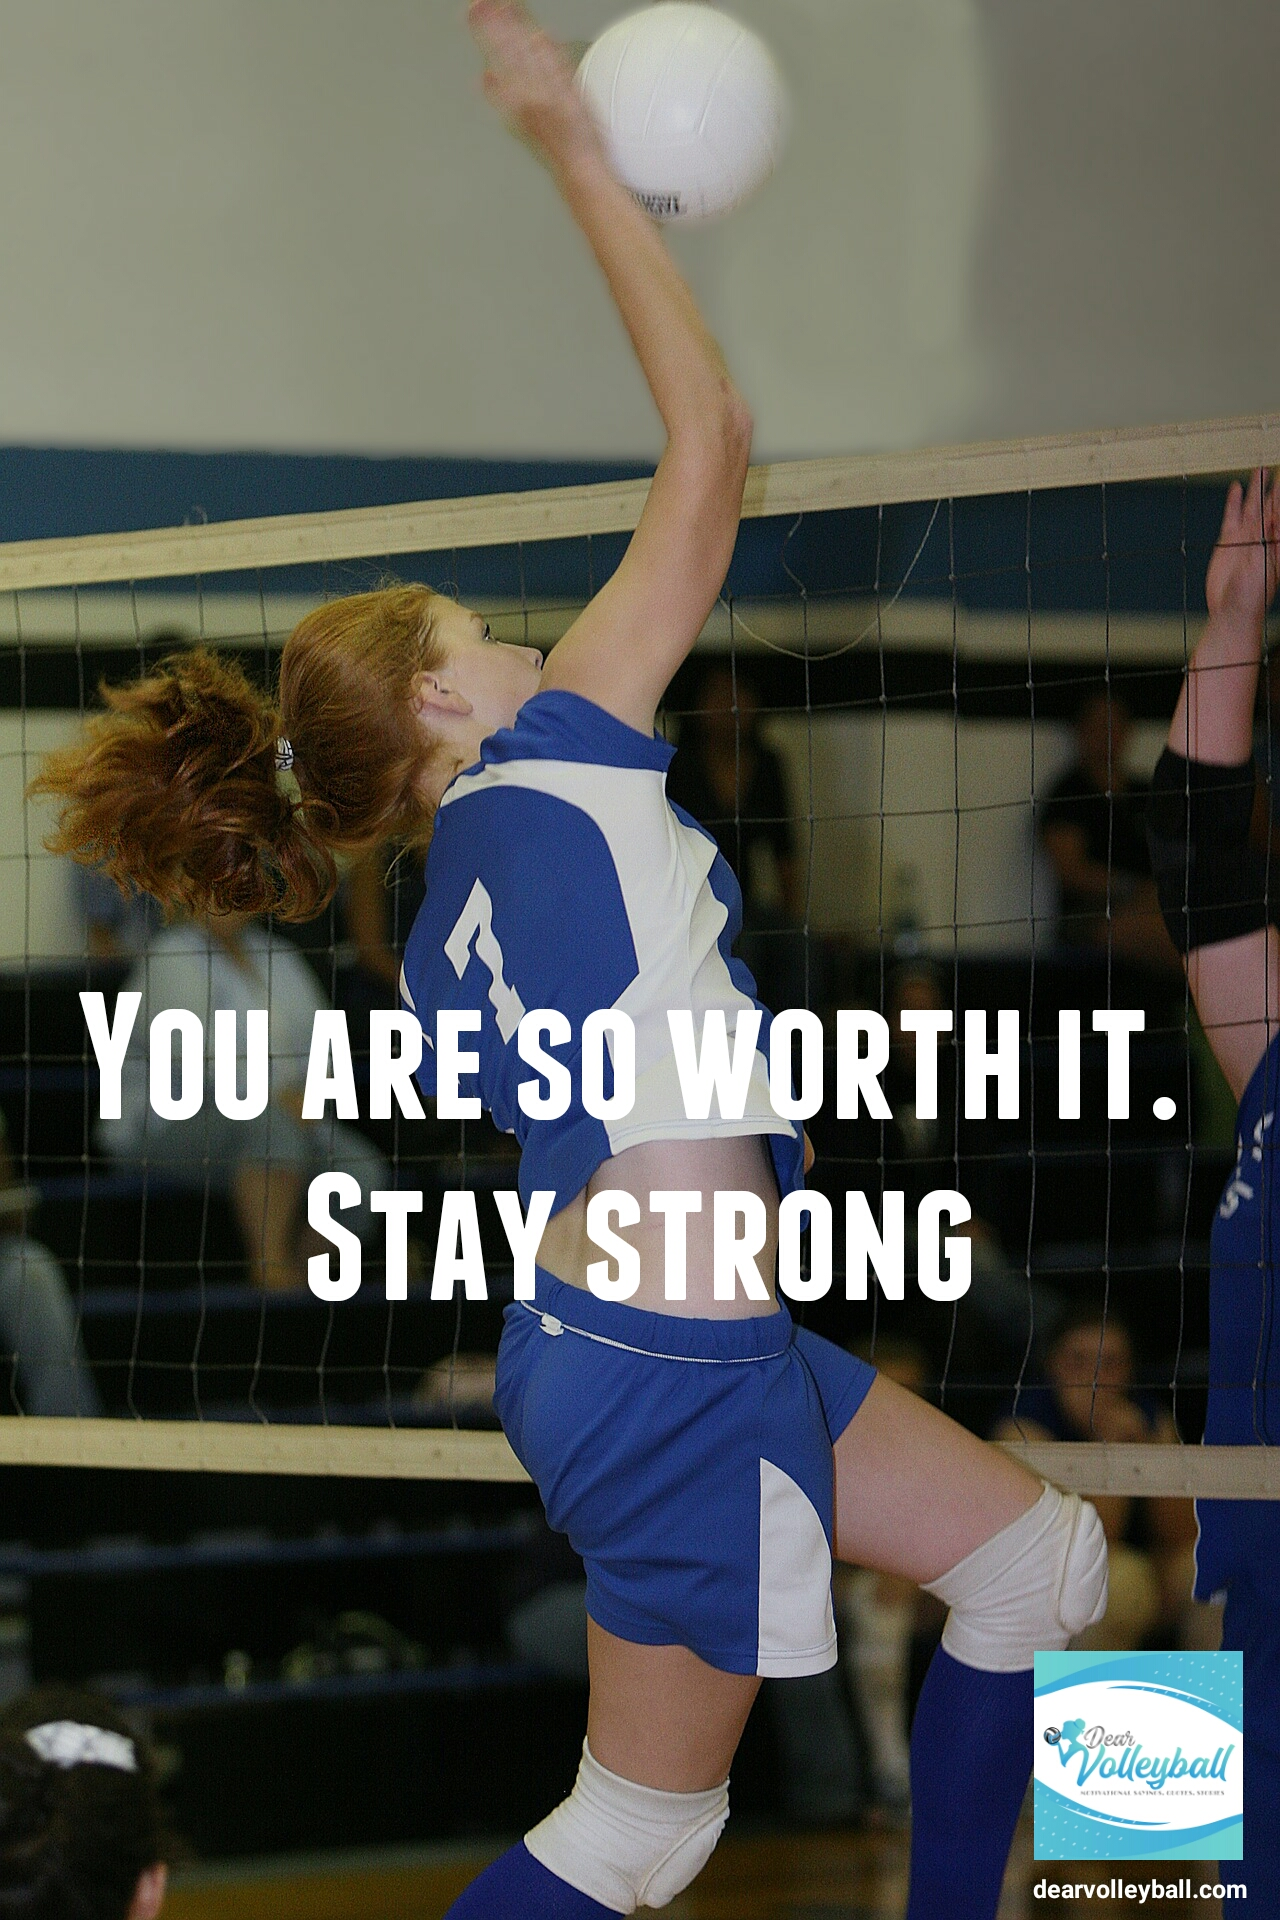 You are so worth it, stay strong and other quotes on motivation on DearVolleyball.com